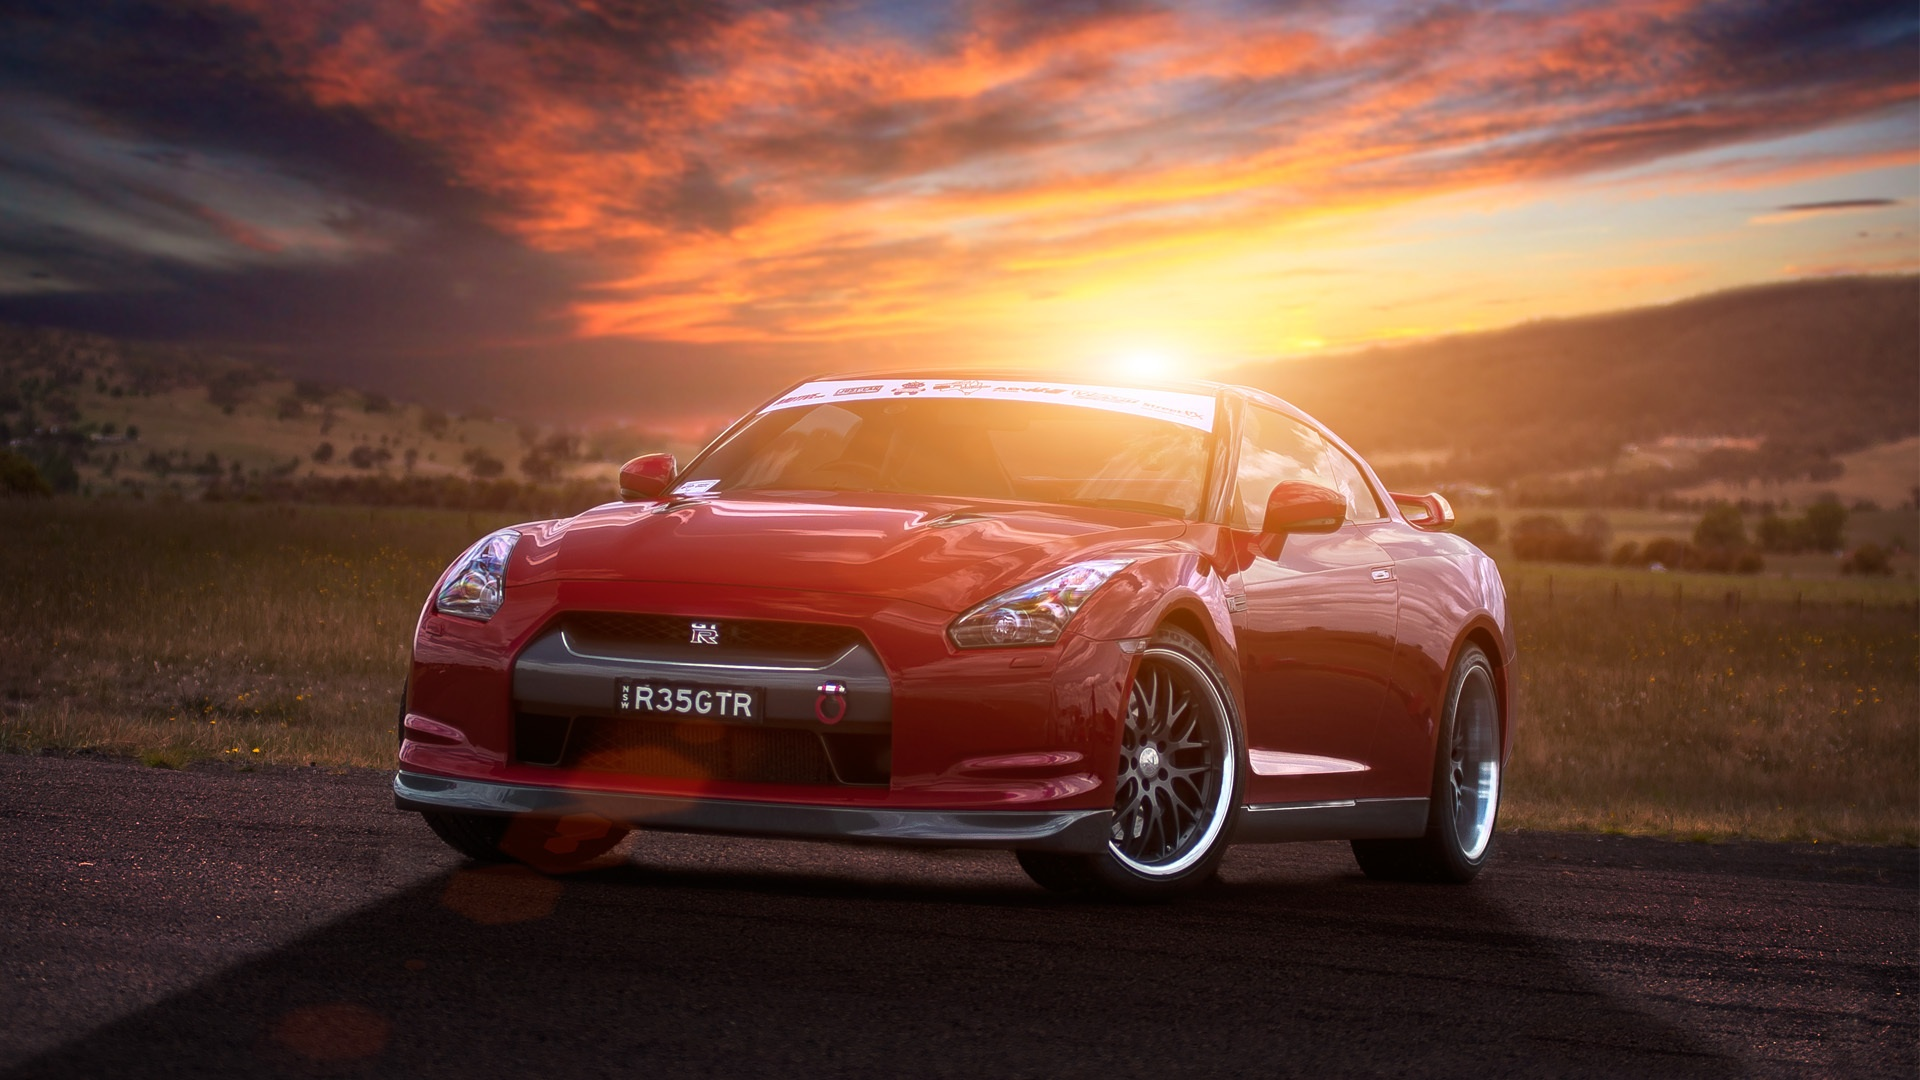 Wallpaper Nissan GT R R35 Red Supercar At Sunset 1920x1080 Full HD